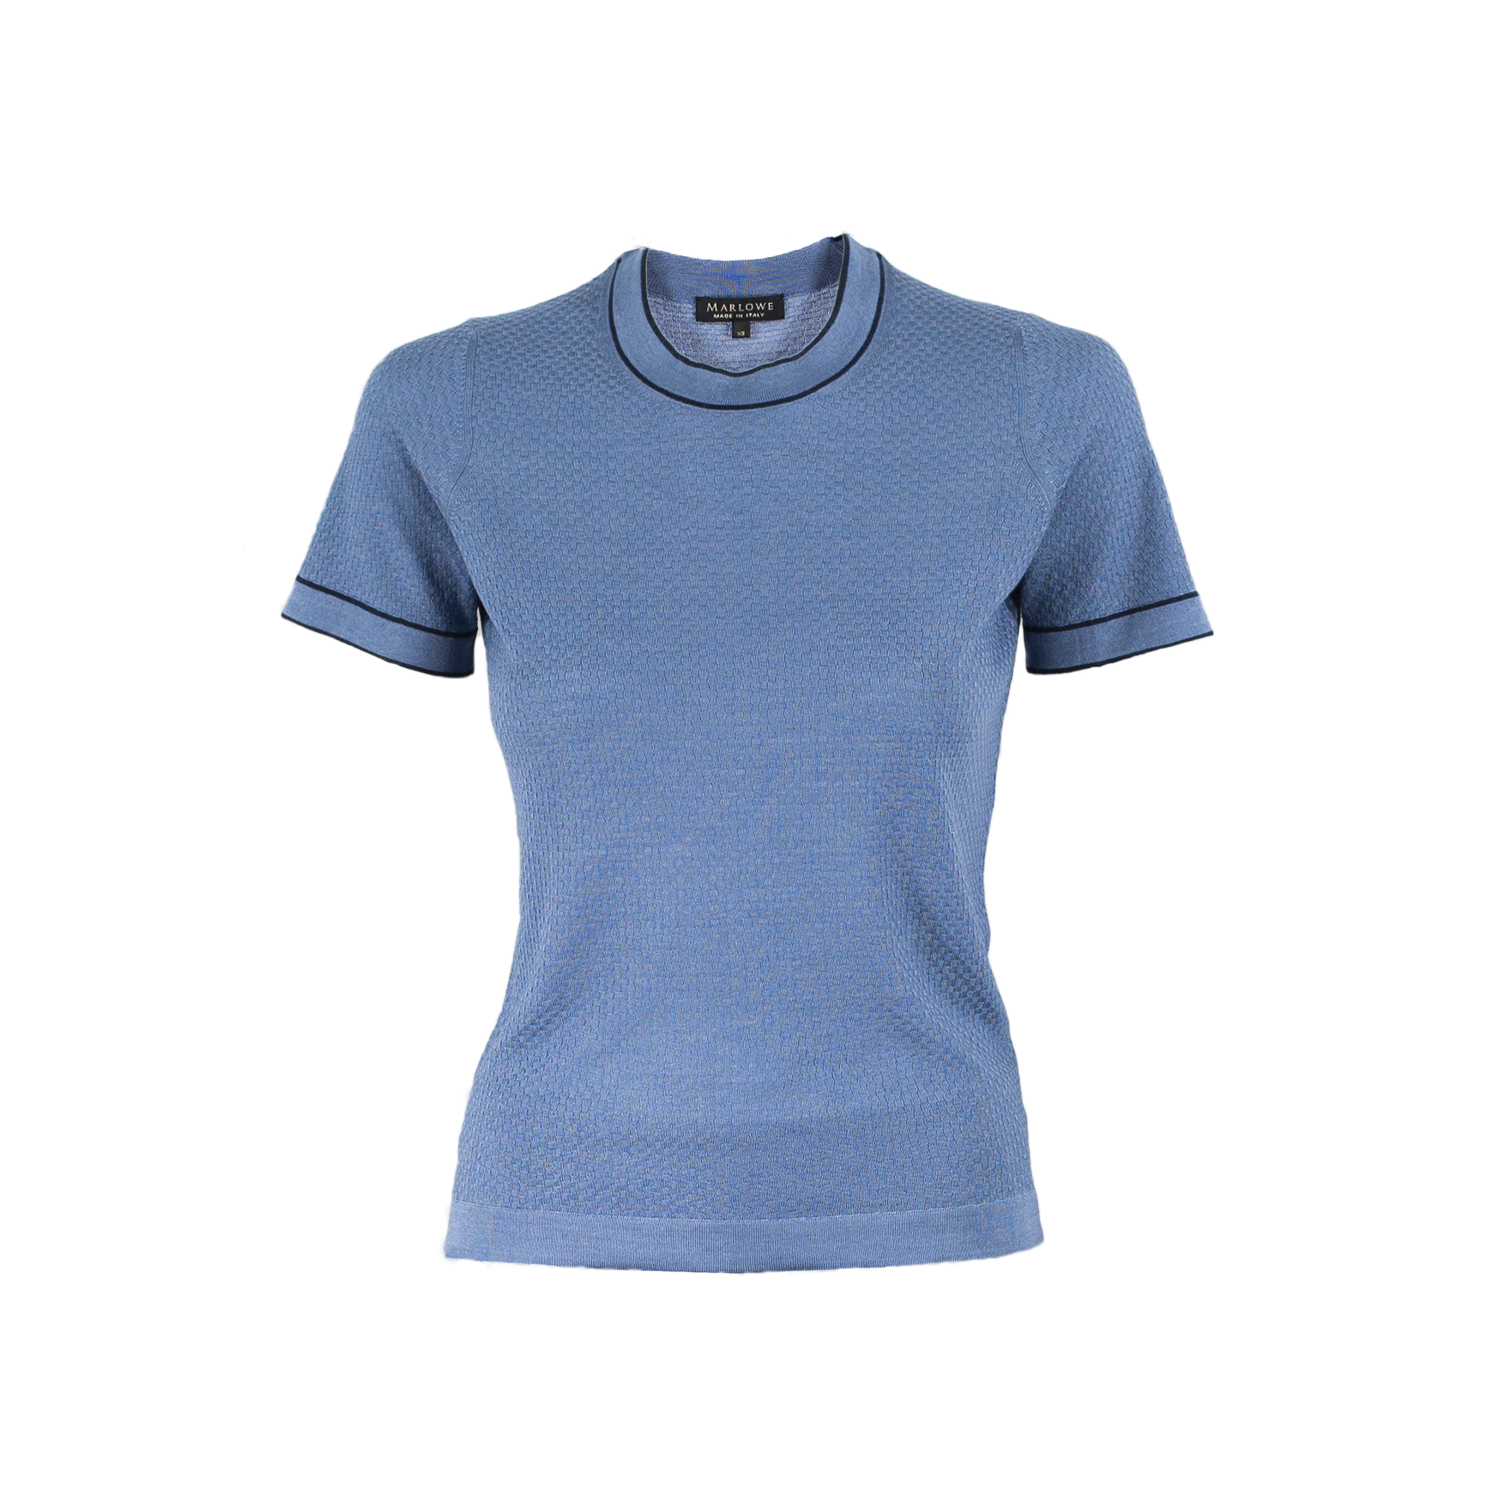 Cashmere crew neck tee second skin - plaster blue with indigo blue trim.jpg